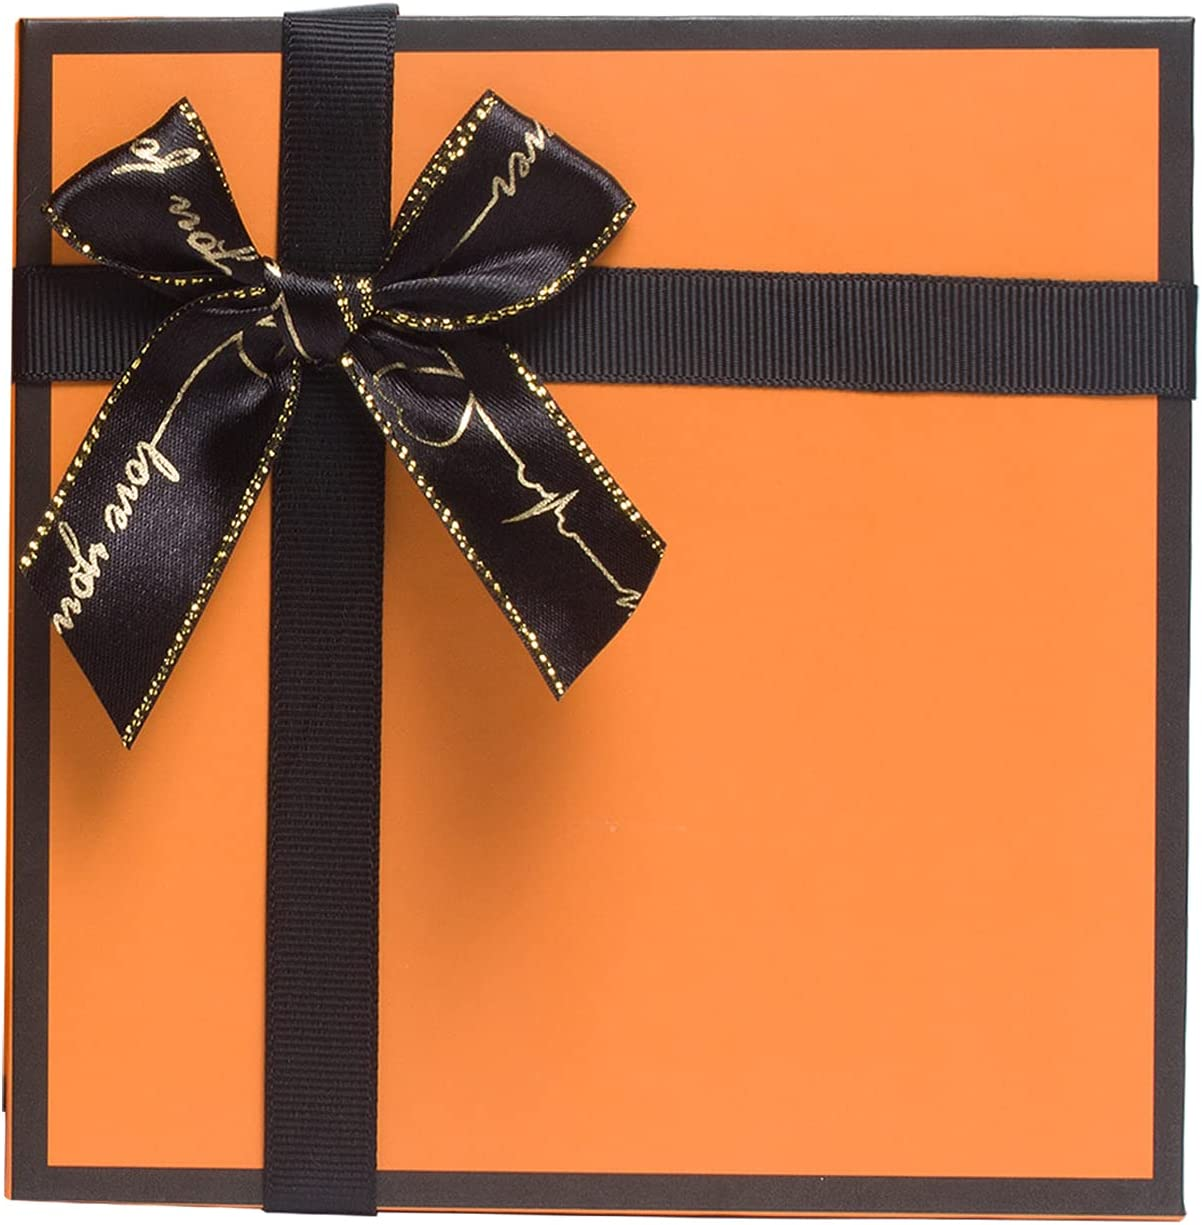 HuskyLove Luxury Gift Box - Orange Gift Boxes, with Lid and Shredded Paper Filler for Wedding, Birthday, Anniversary, Christmas (Small)